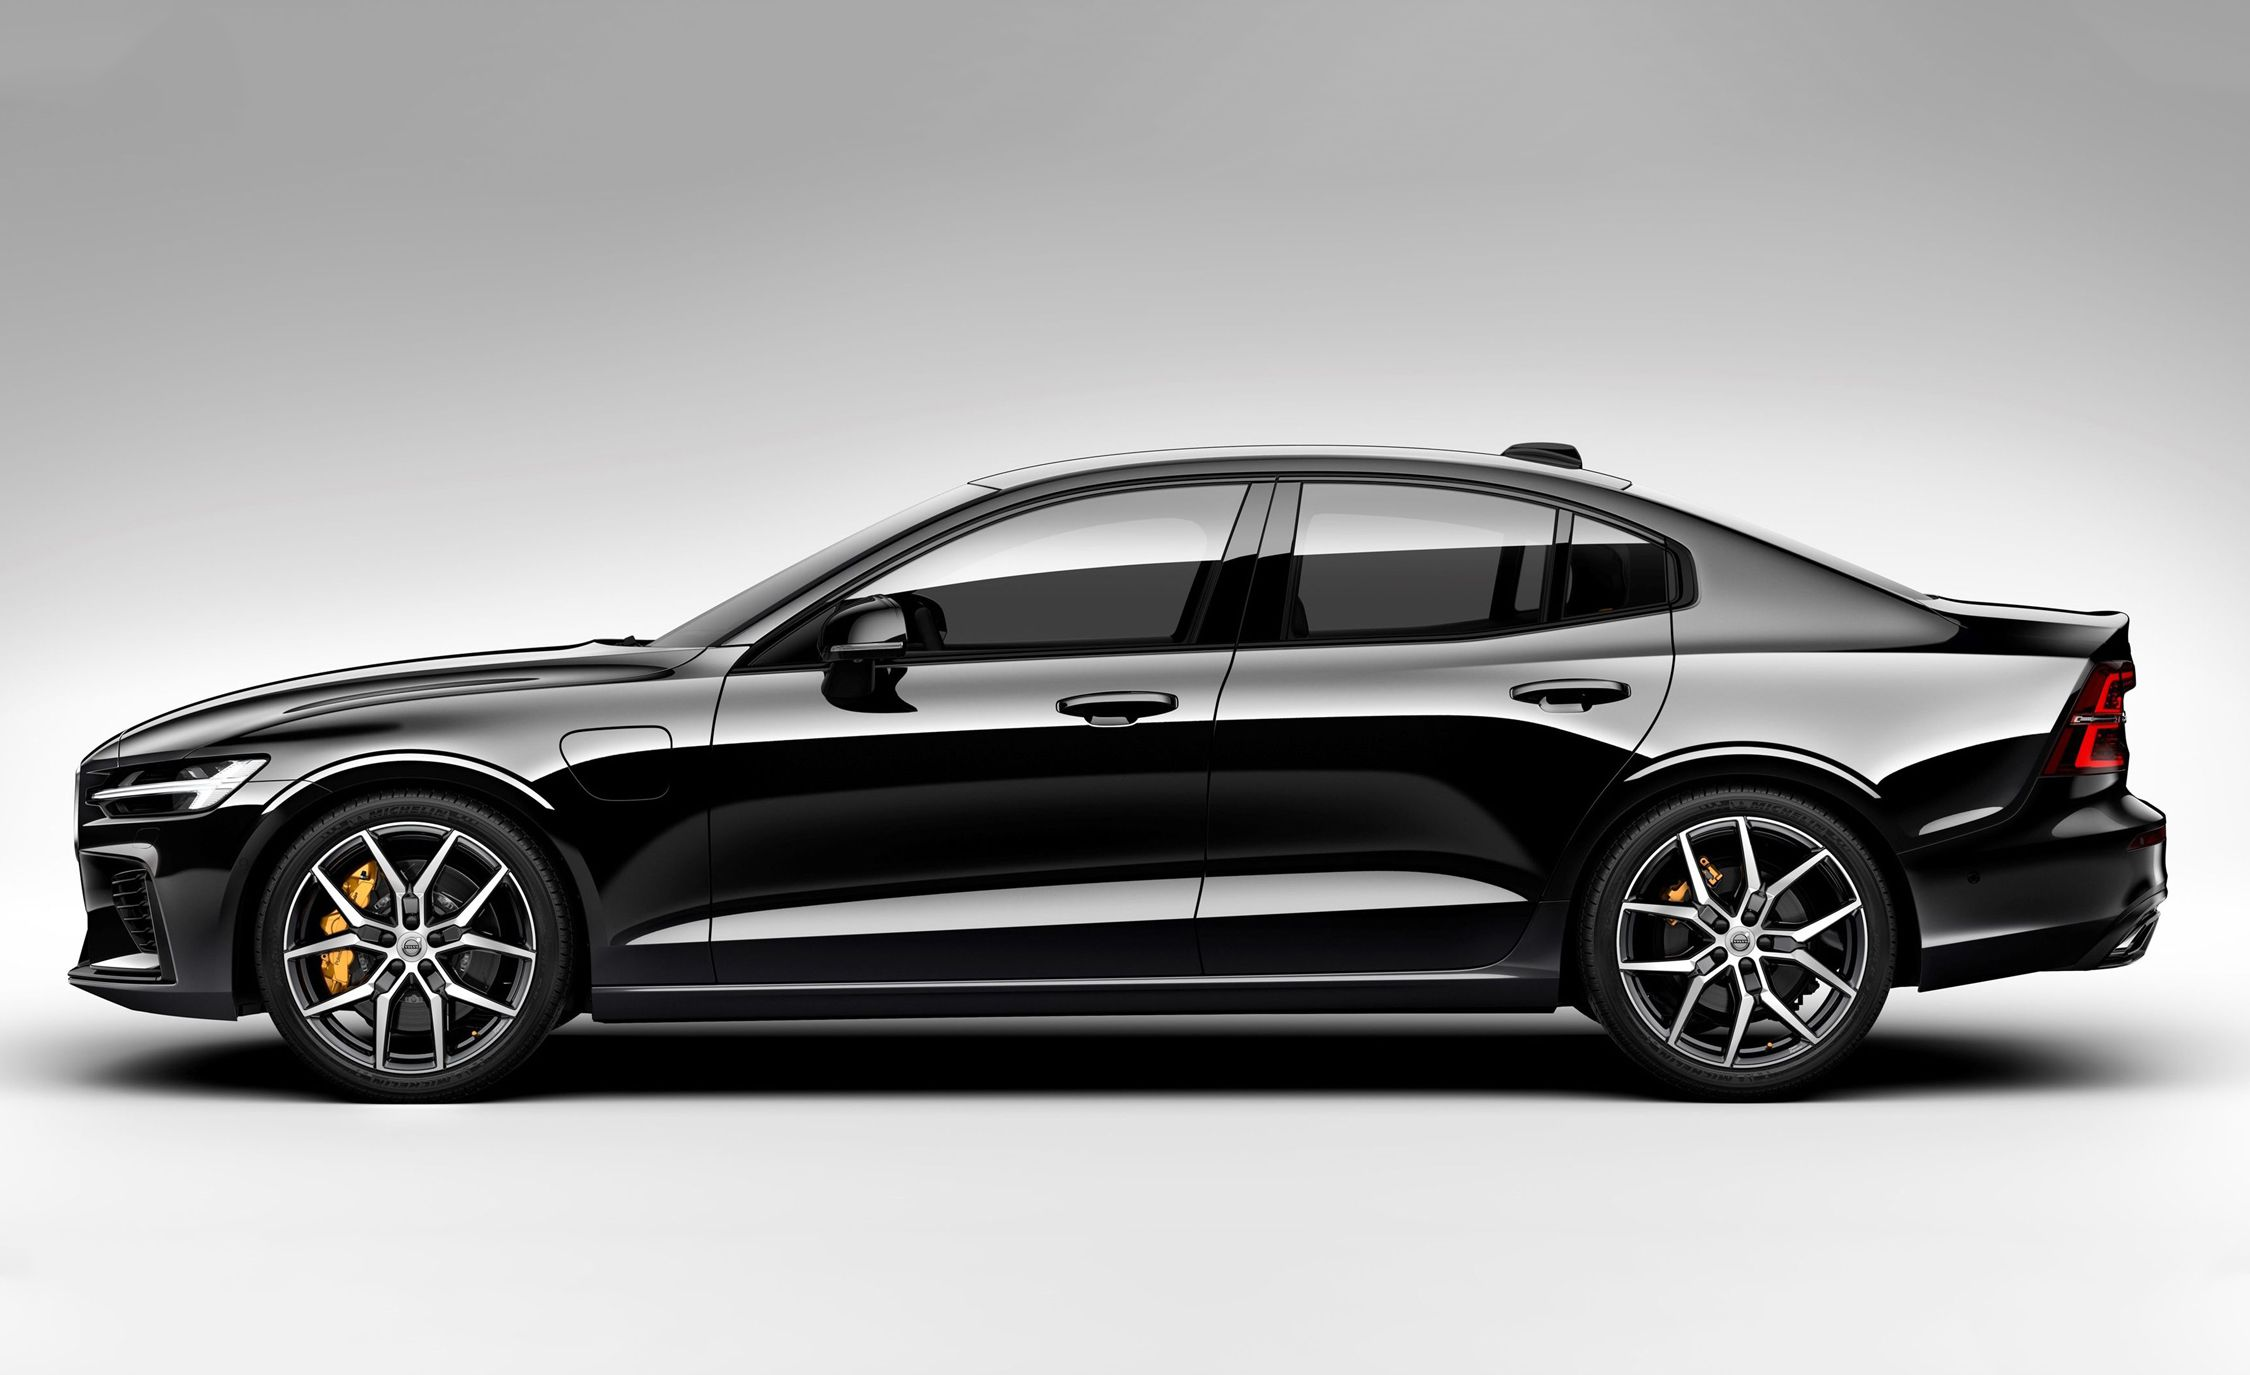 The Polestar-Tuned 2019 Volvo S60 Is Going to Be Extremely Rare | News | Car and Driver